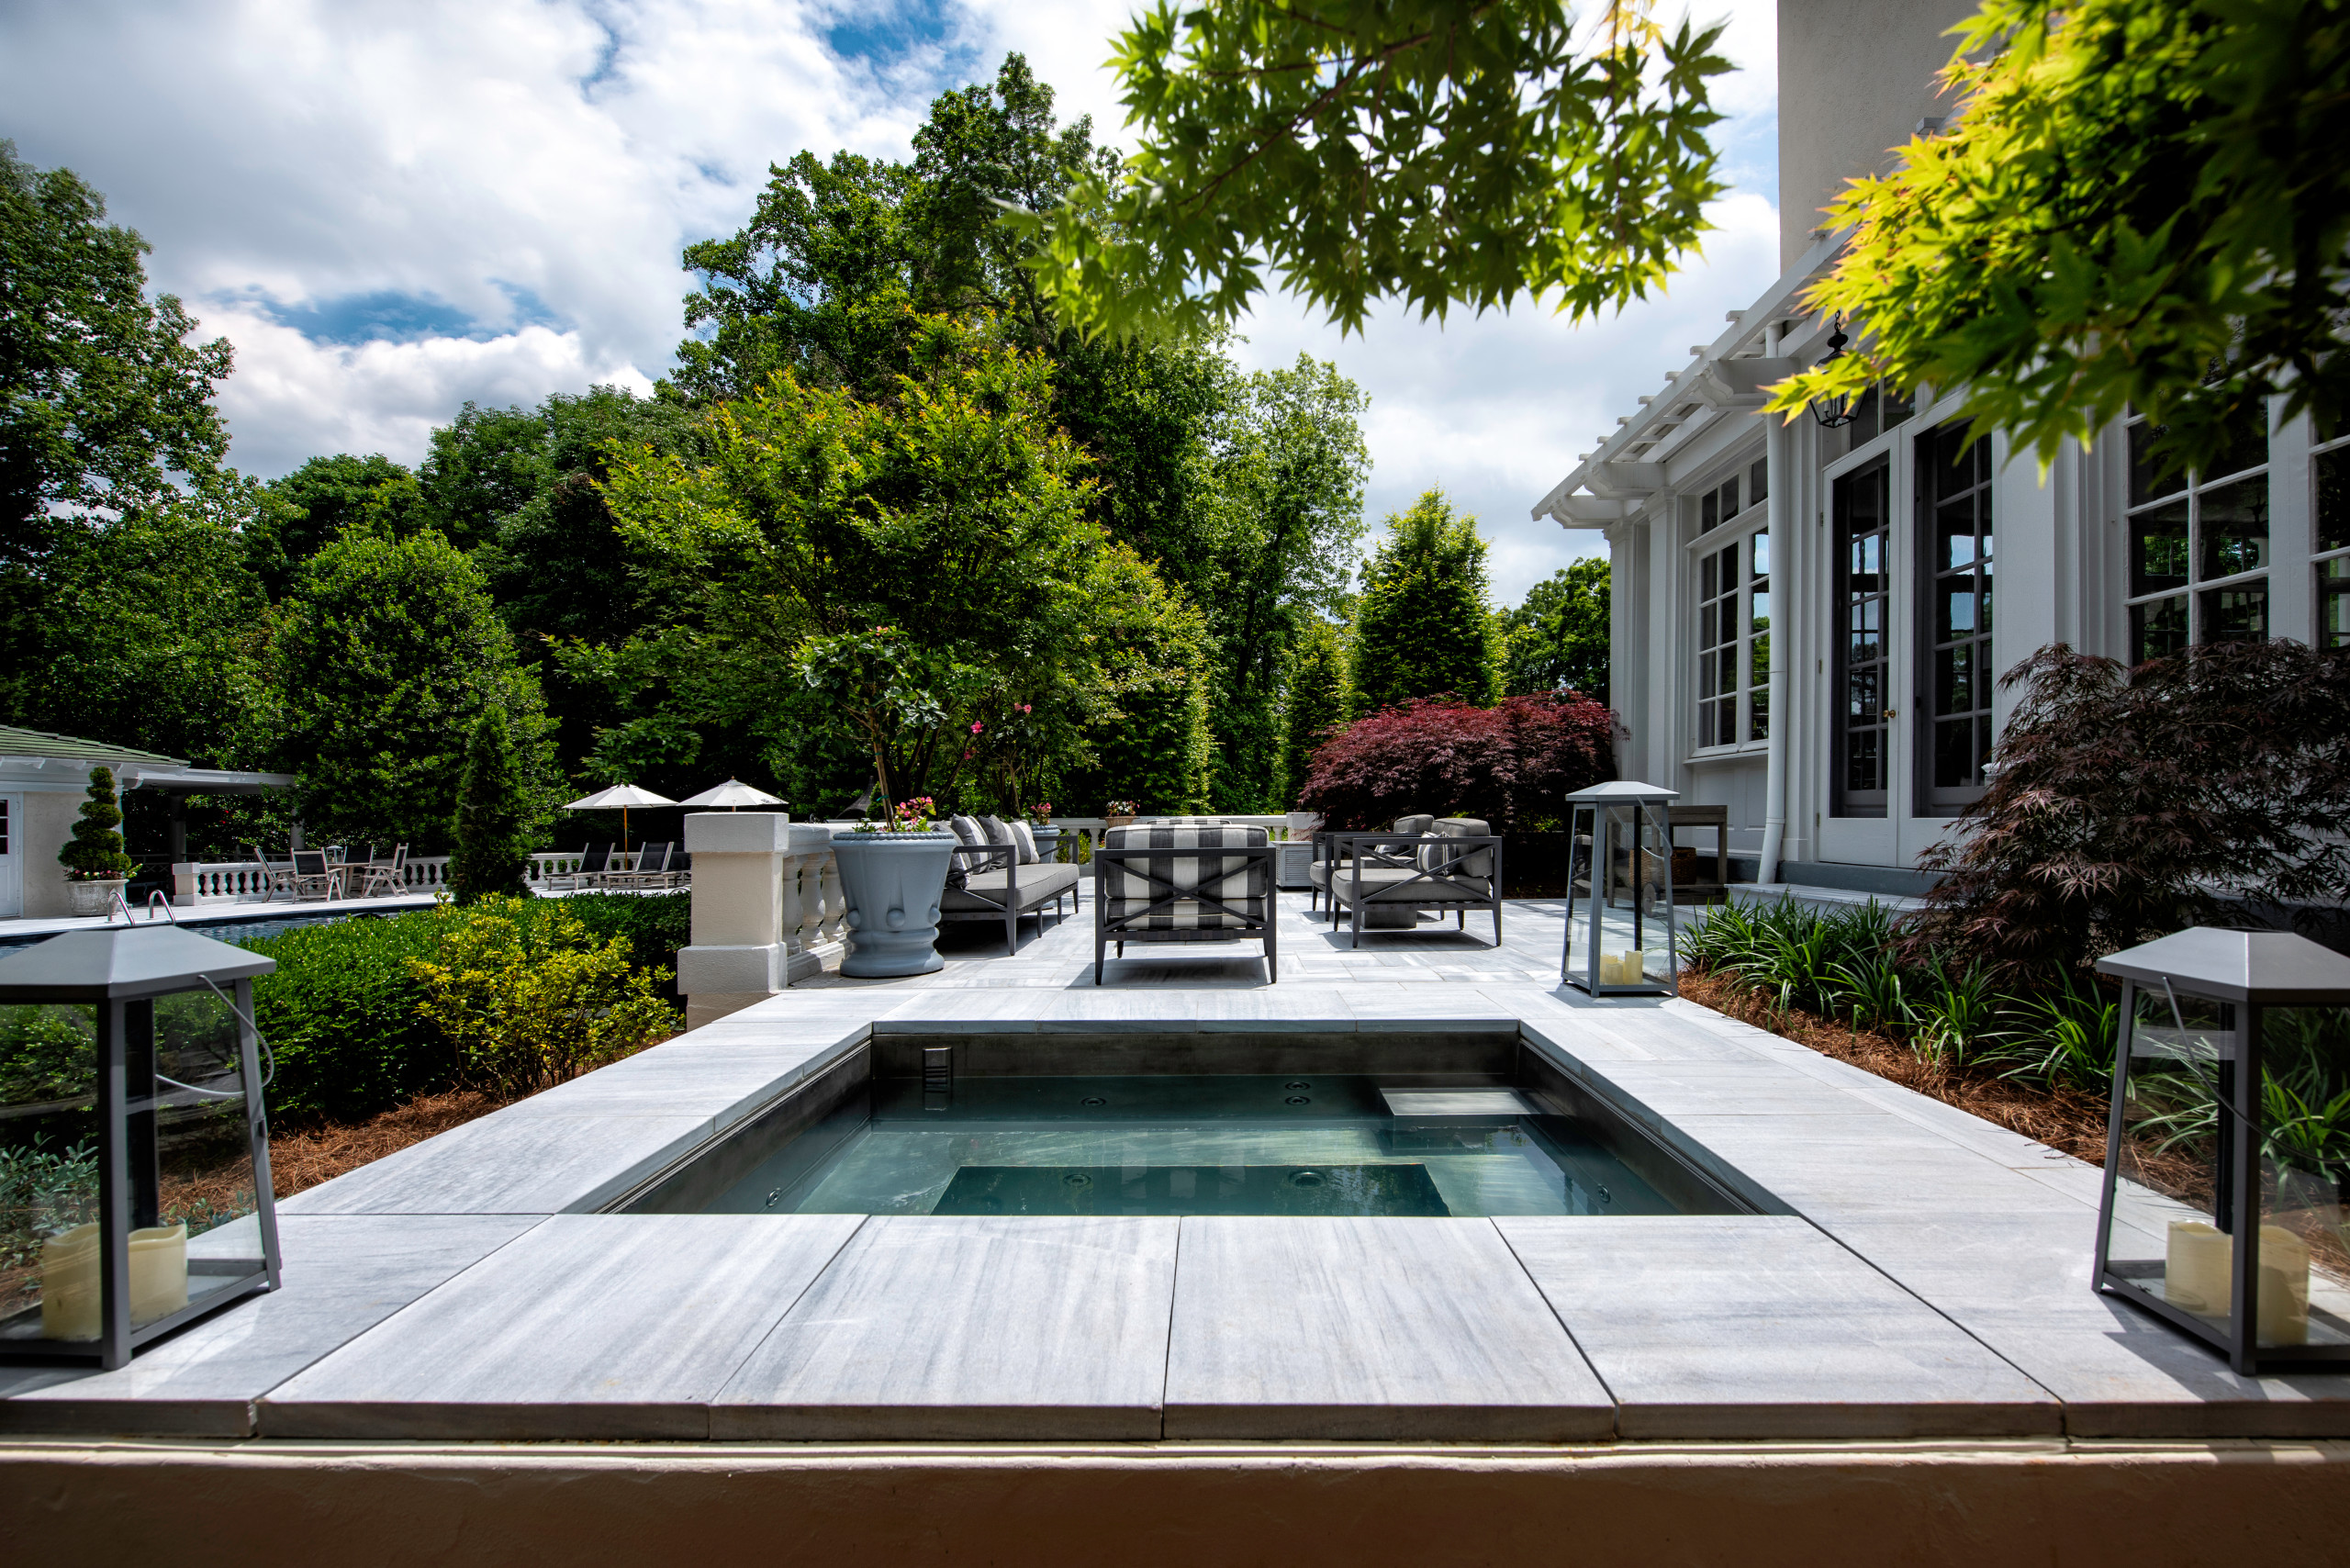 Luxury Marble custom Spa & Patio Renovation